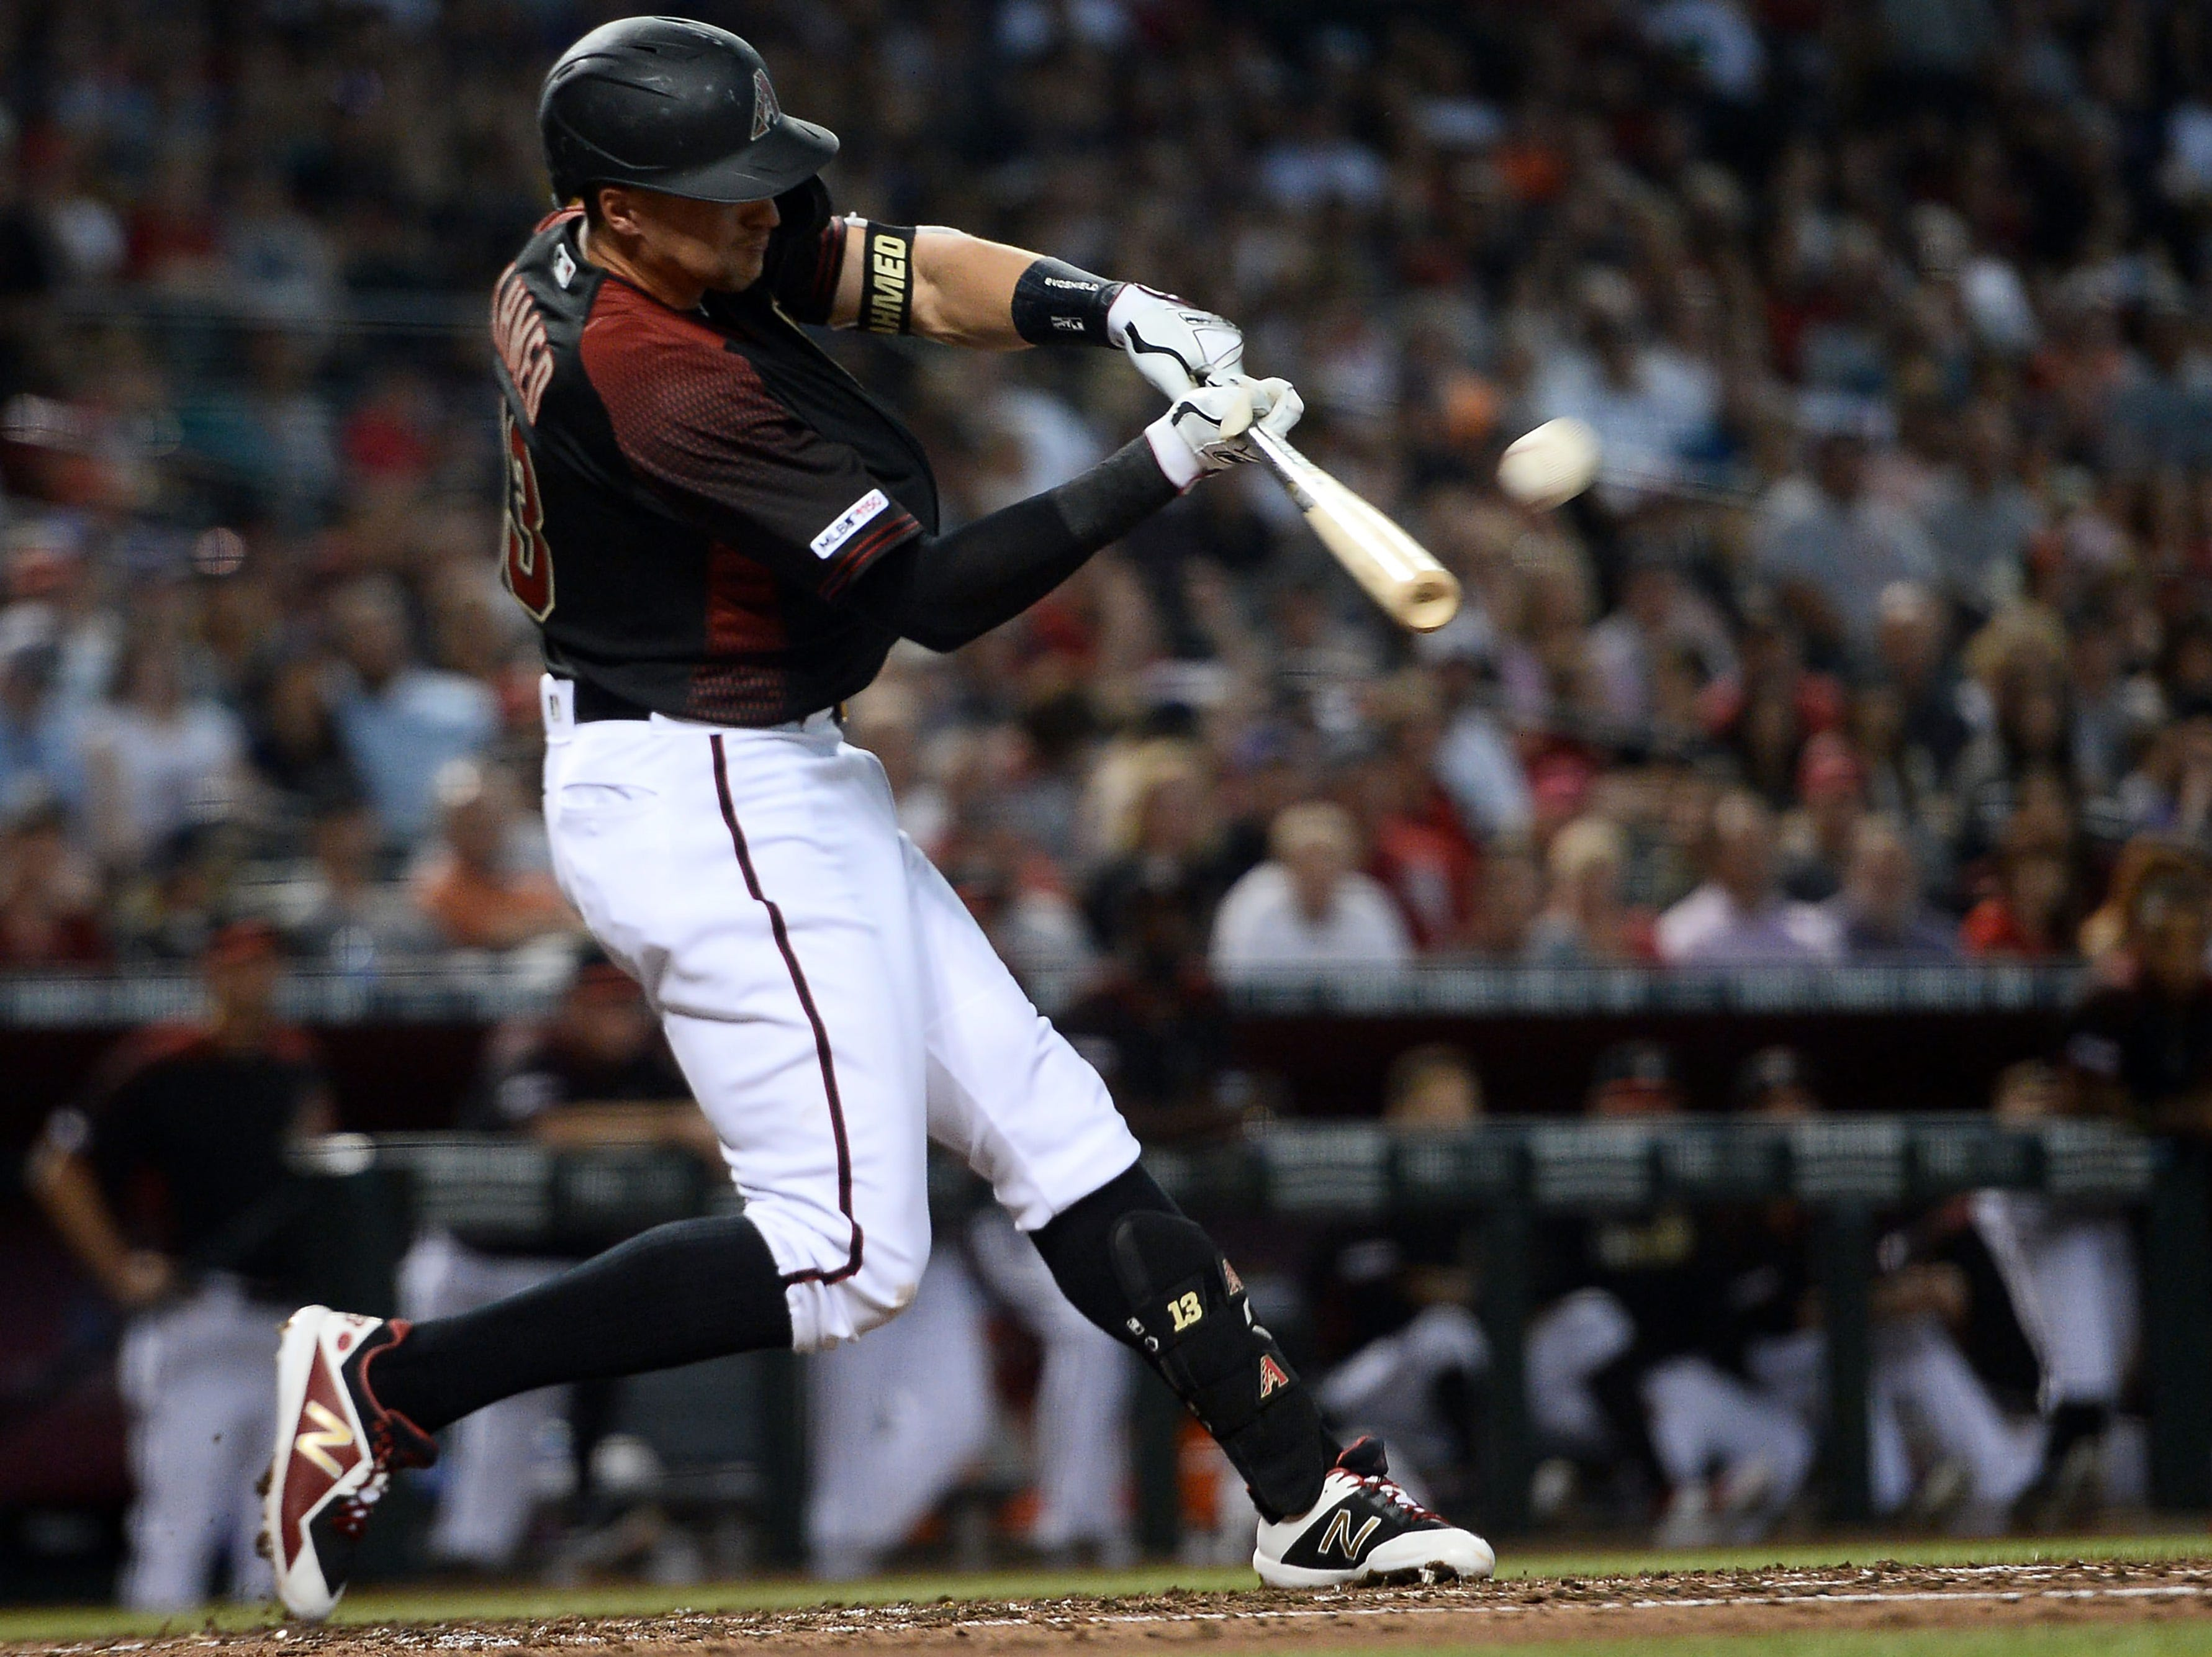 Apr 6, 2019; Phoenix, AZ, USA; Arizona Diamondbacks shortstop Nick Ahmed (13) hits an RBI single against the Boston Red Sox during the second inning at Chase Field. Mandatory Credit: Joe Camporeale-USA TODAY Sports